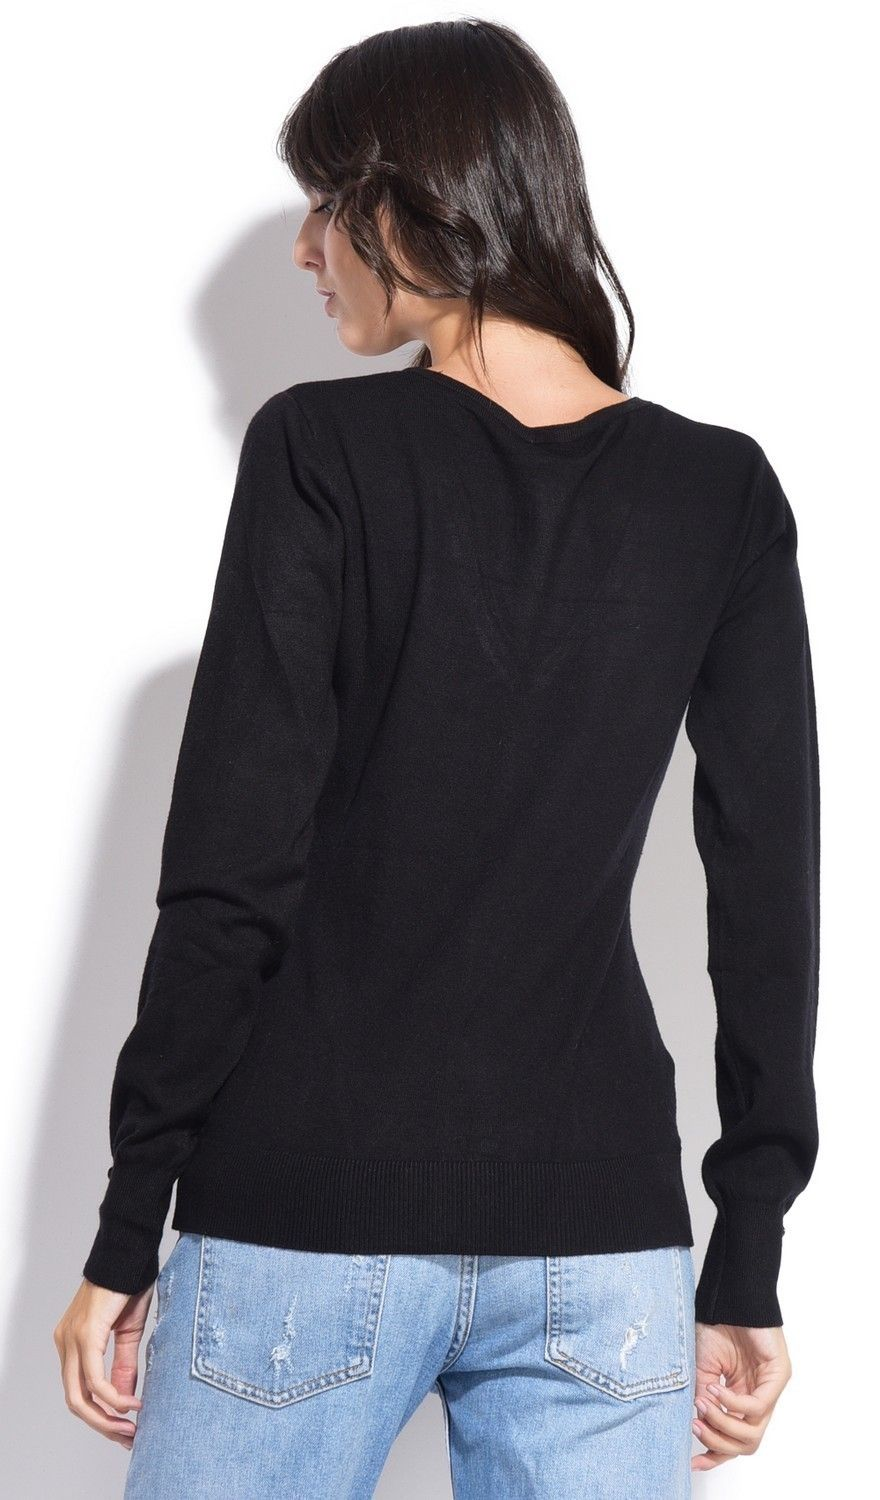 C&JO V-neck Cardigan with Buttoned Sleeves in Black